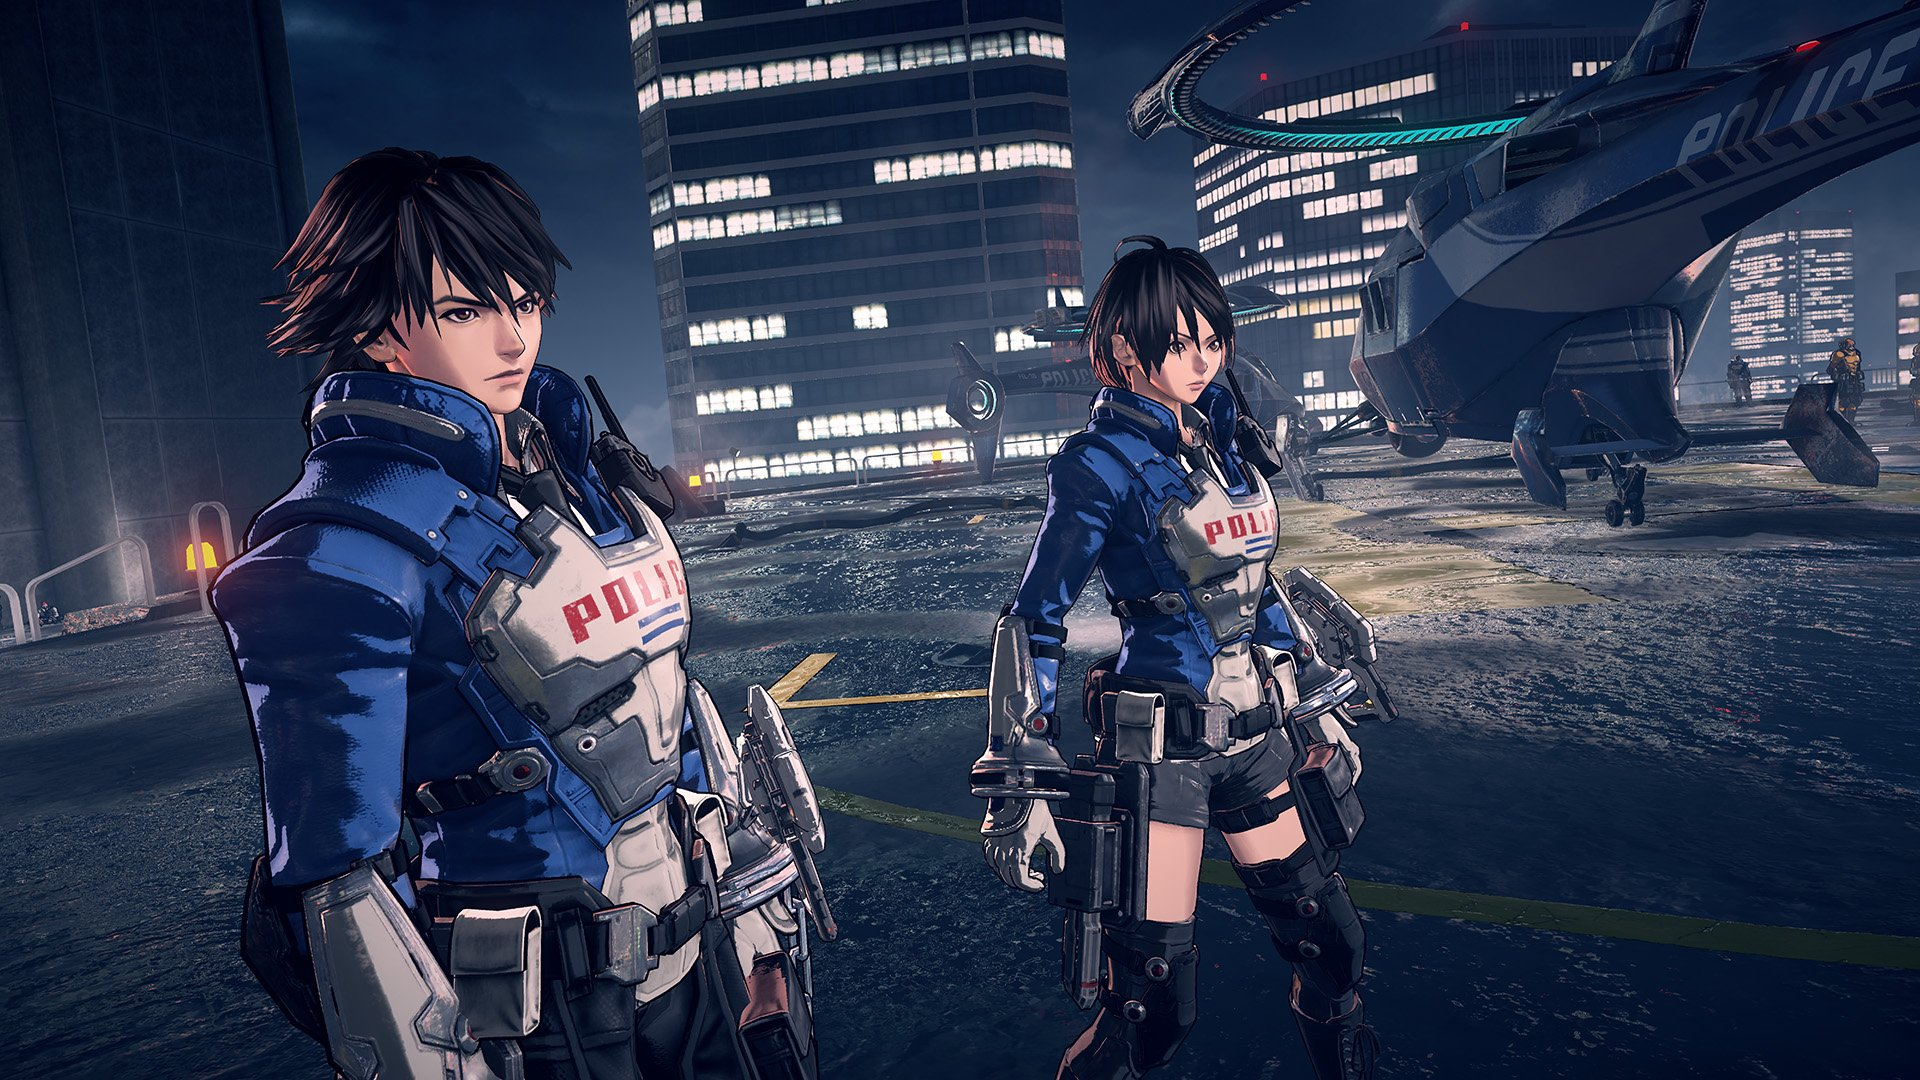 Astral Chain will release on August 30 exclusively for Nintendo Switch.